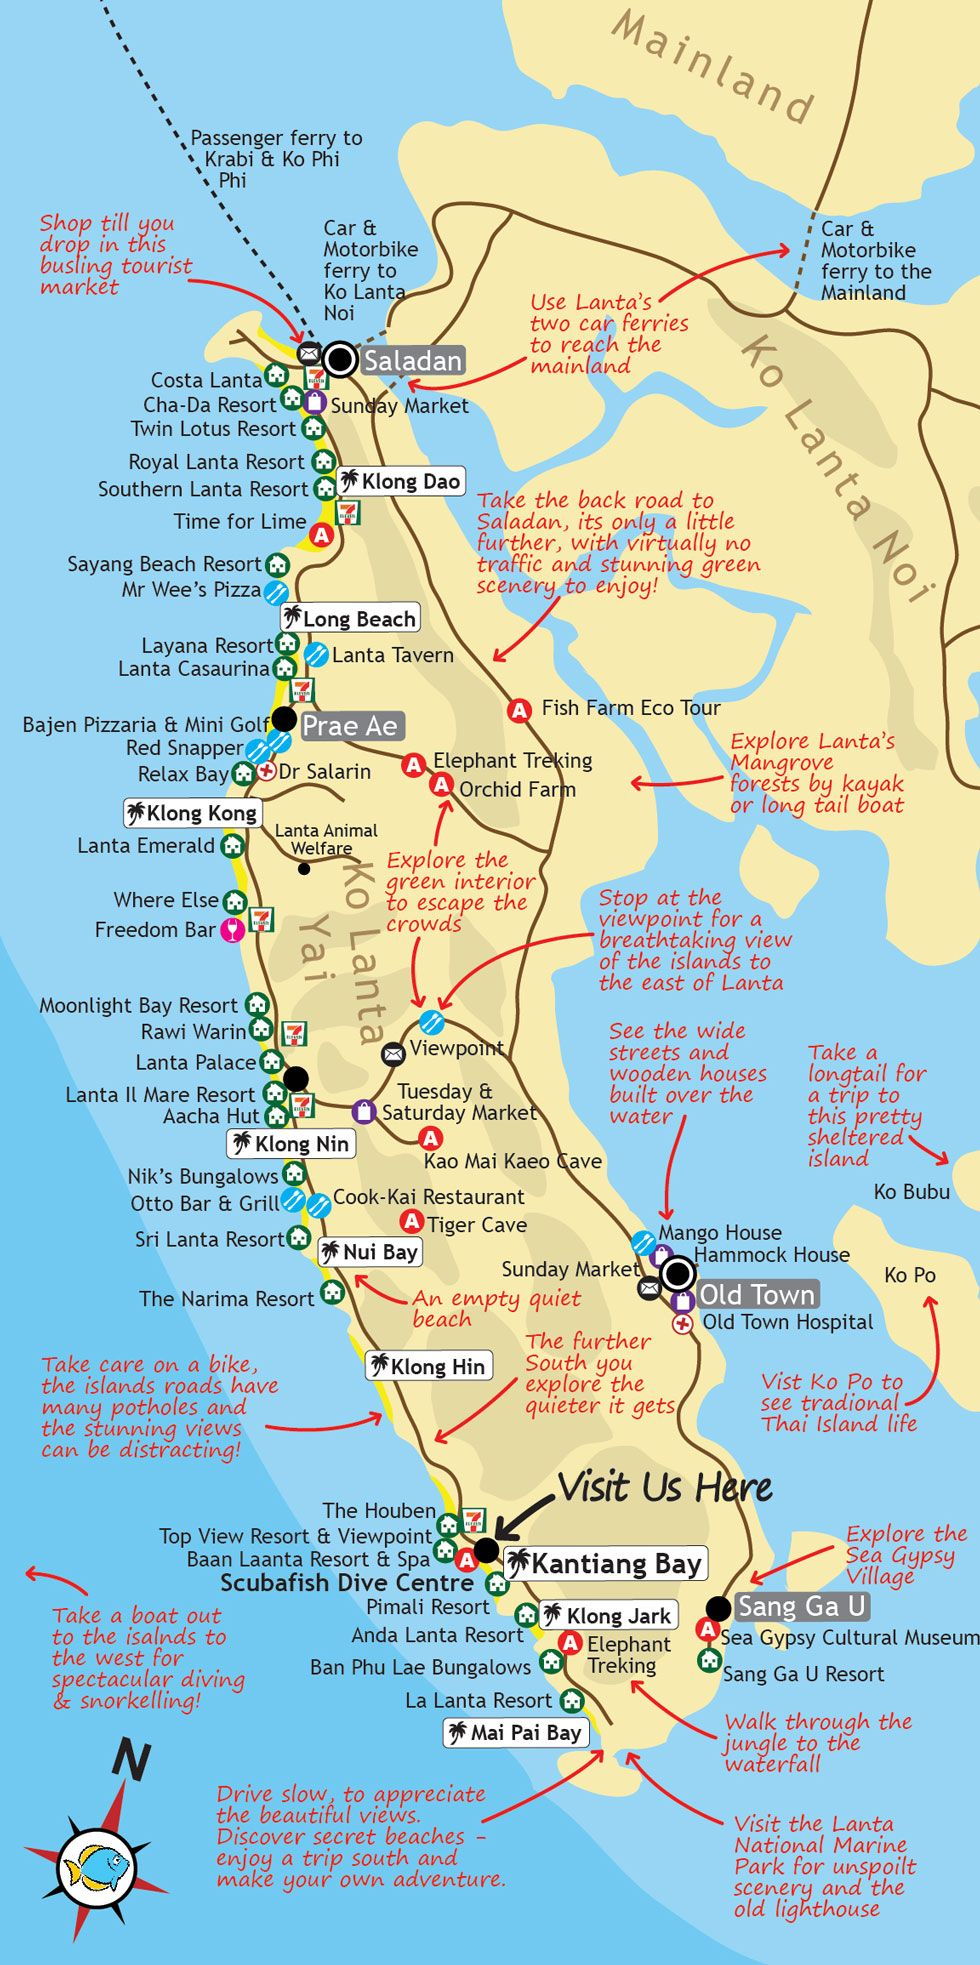 Ko Lanta Map this map of Ko Lanta in Southern Thailand features points of